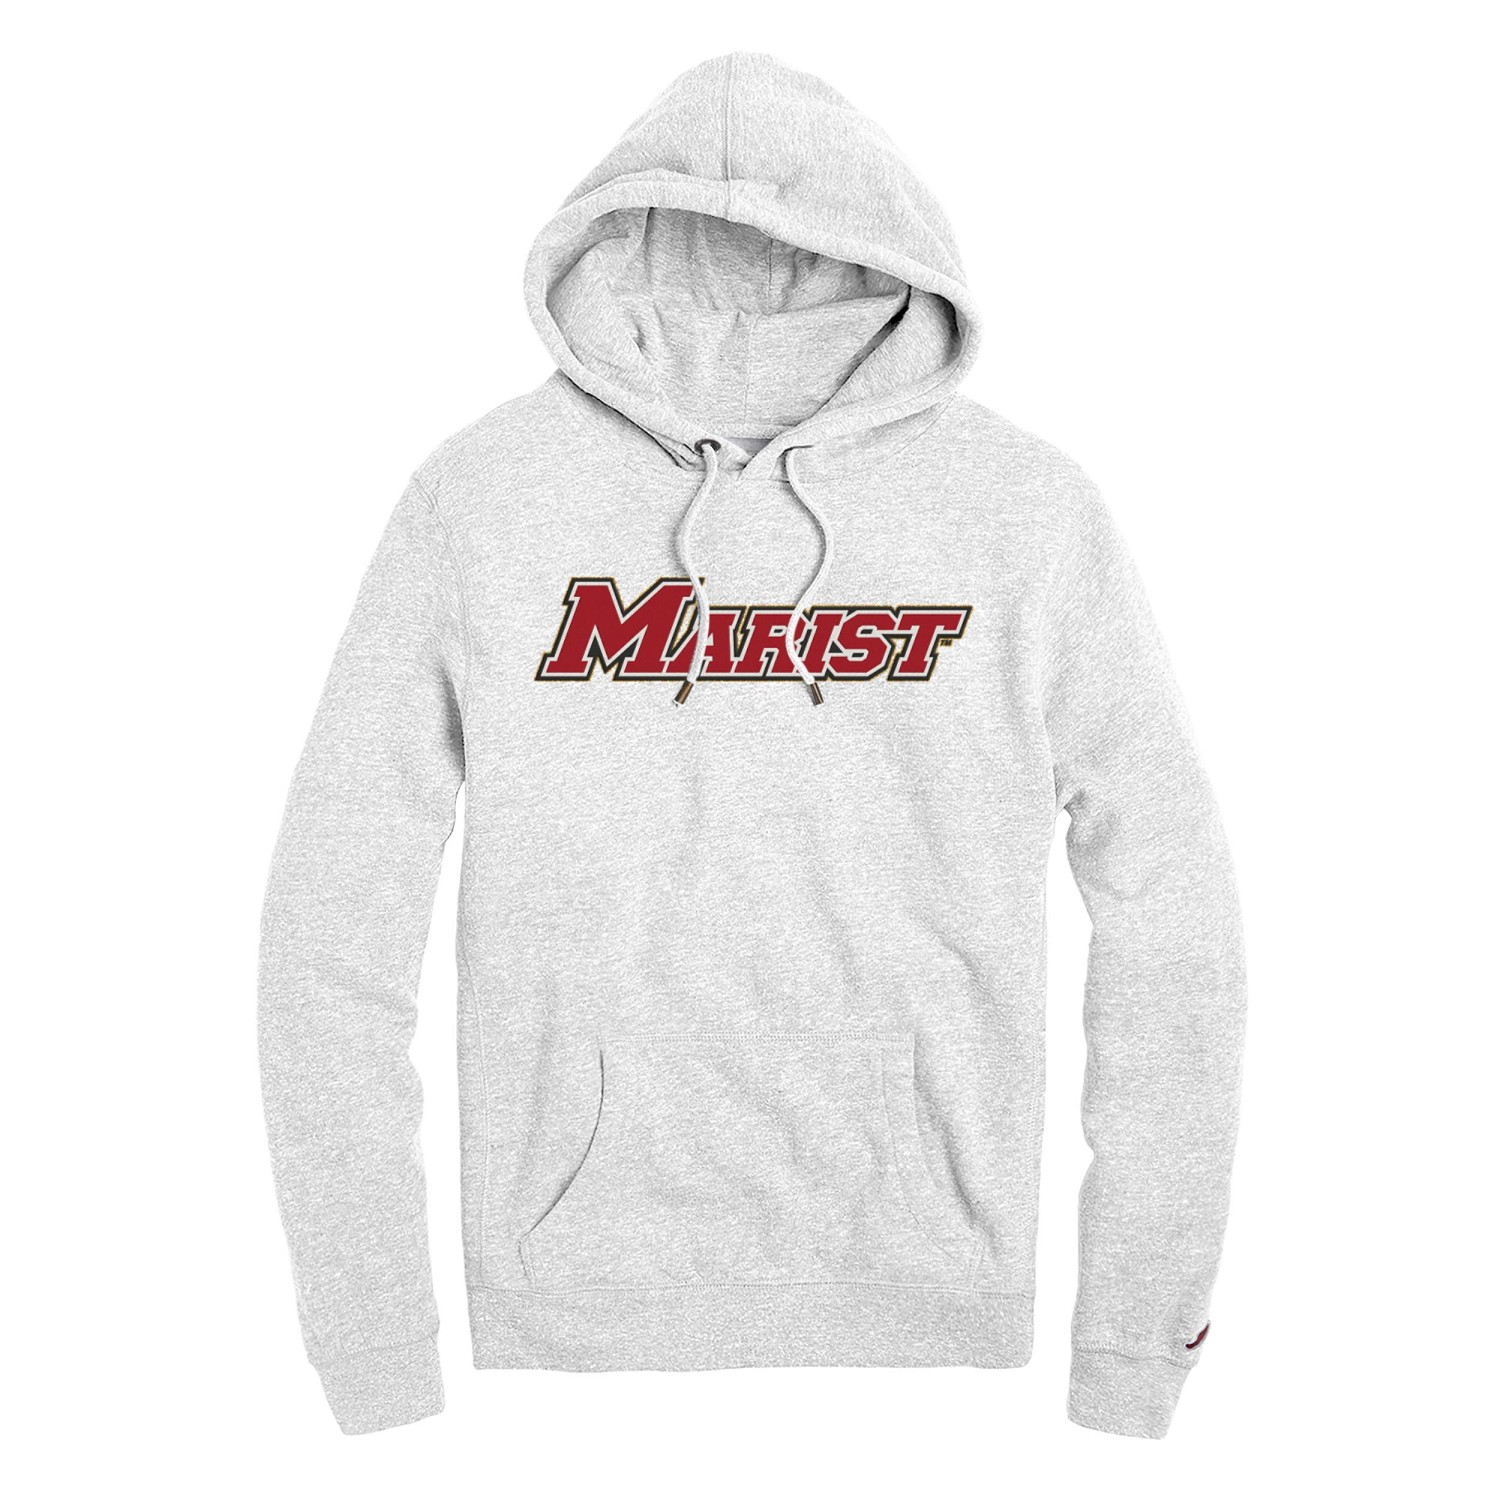 Marist College League Heritage Triblend Pullover Hoodie